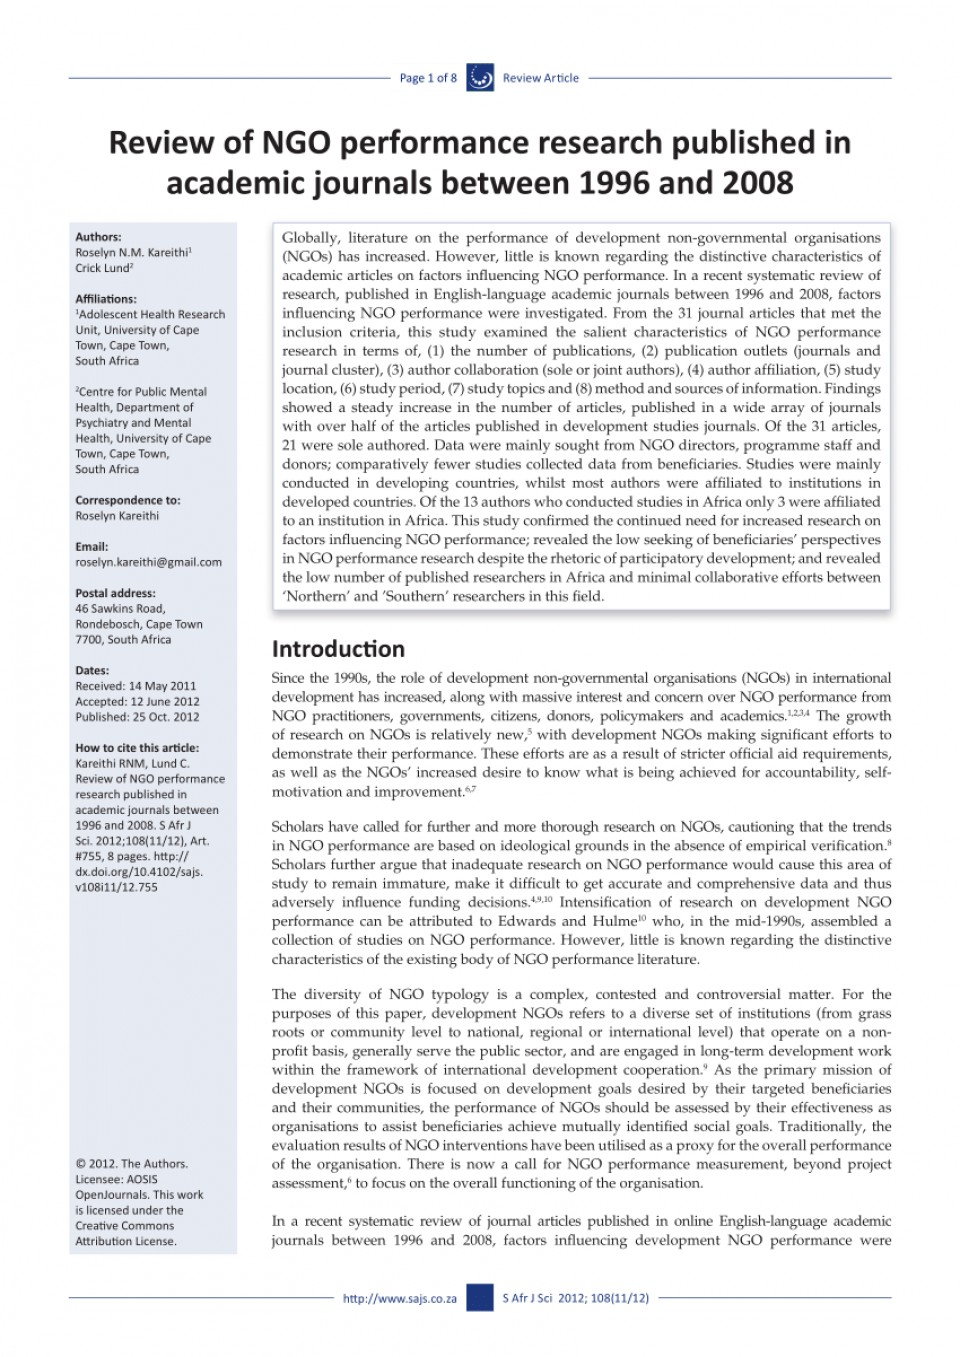 006 Research Paper Published Breathtaking About Bullying Papers In Artificial Intelligence Mathematics 960